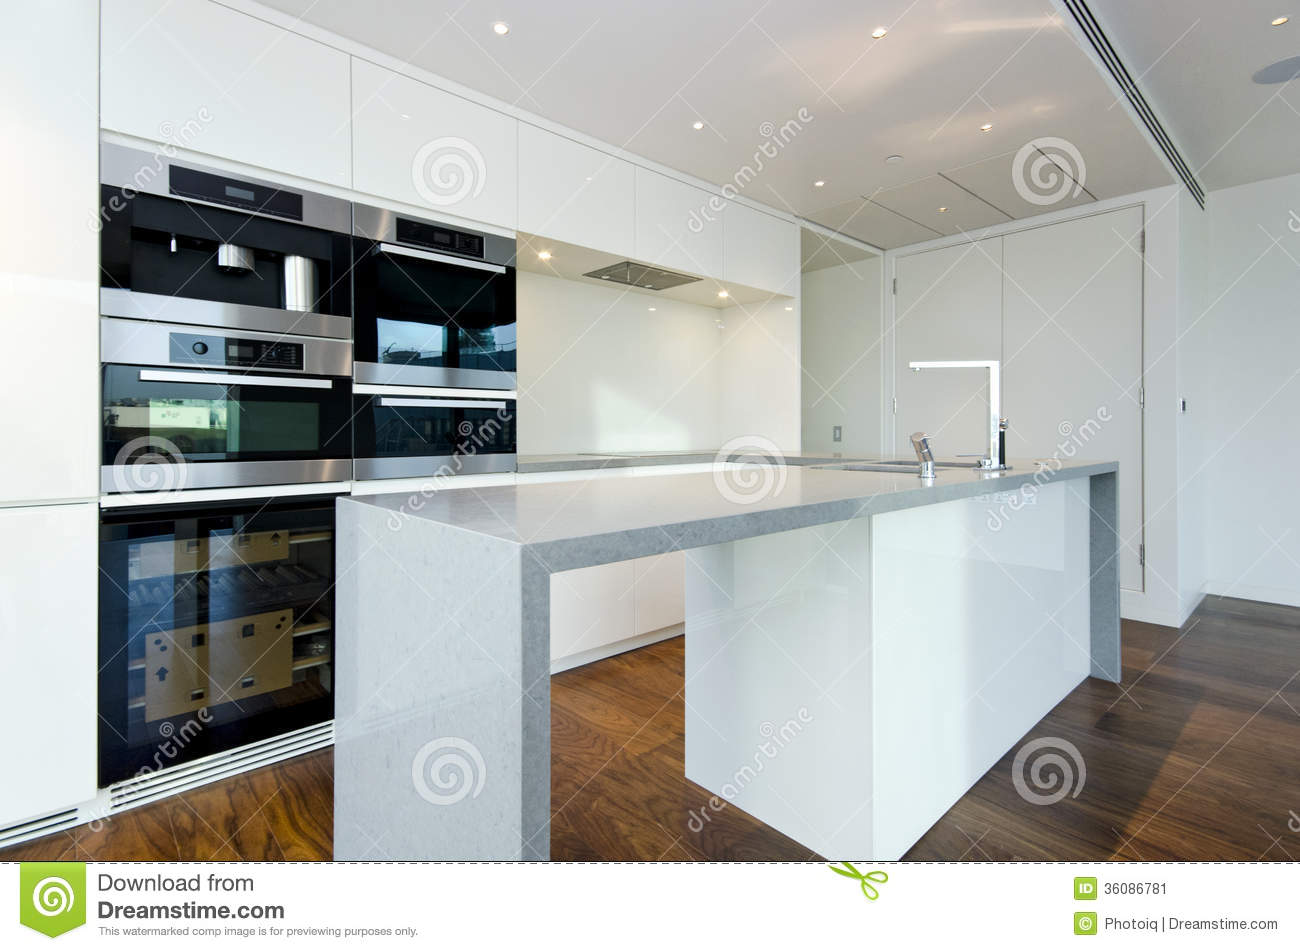 Contemporary Kitchen With Top Spec Appliances Stock Image - Image of ...